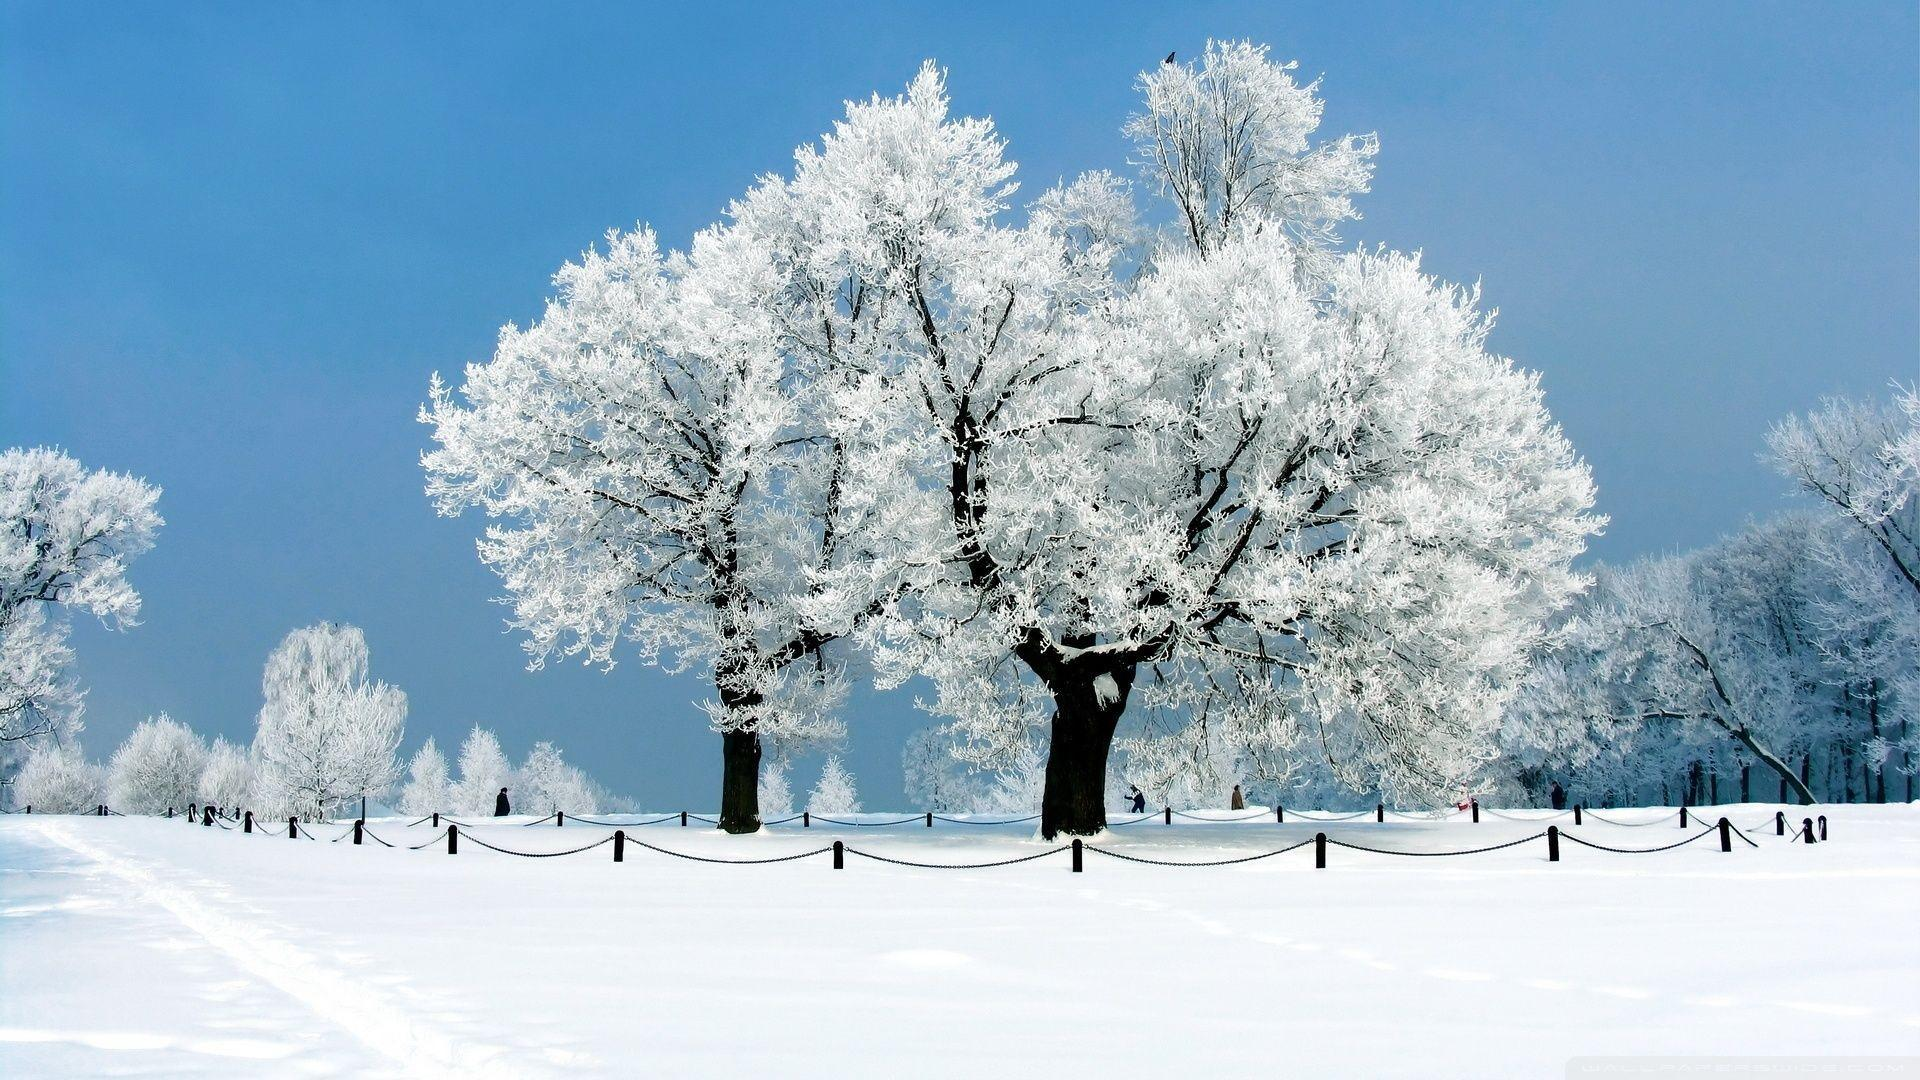 Winter Wallpaper 1920x1080 Backgrounds 47070 HD Pictures | Top ...